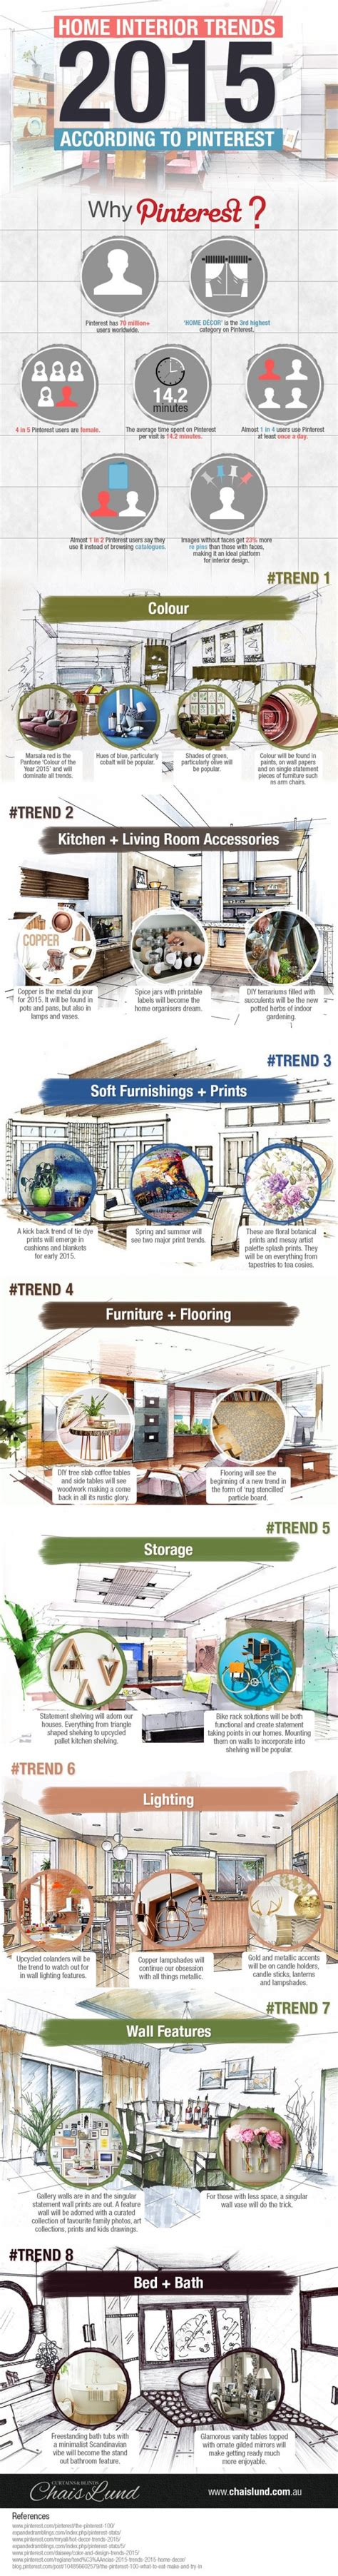 home interior trends 2015 home interior trends for 2015 according to